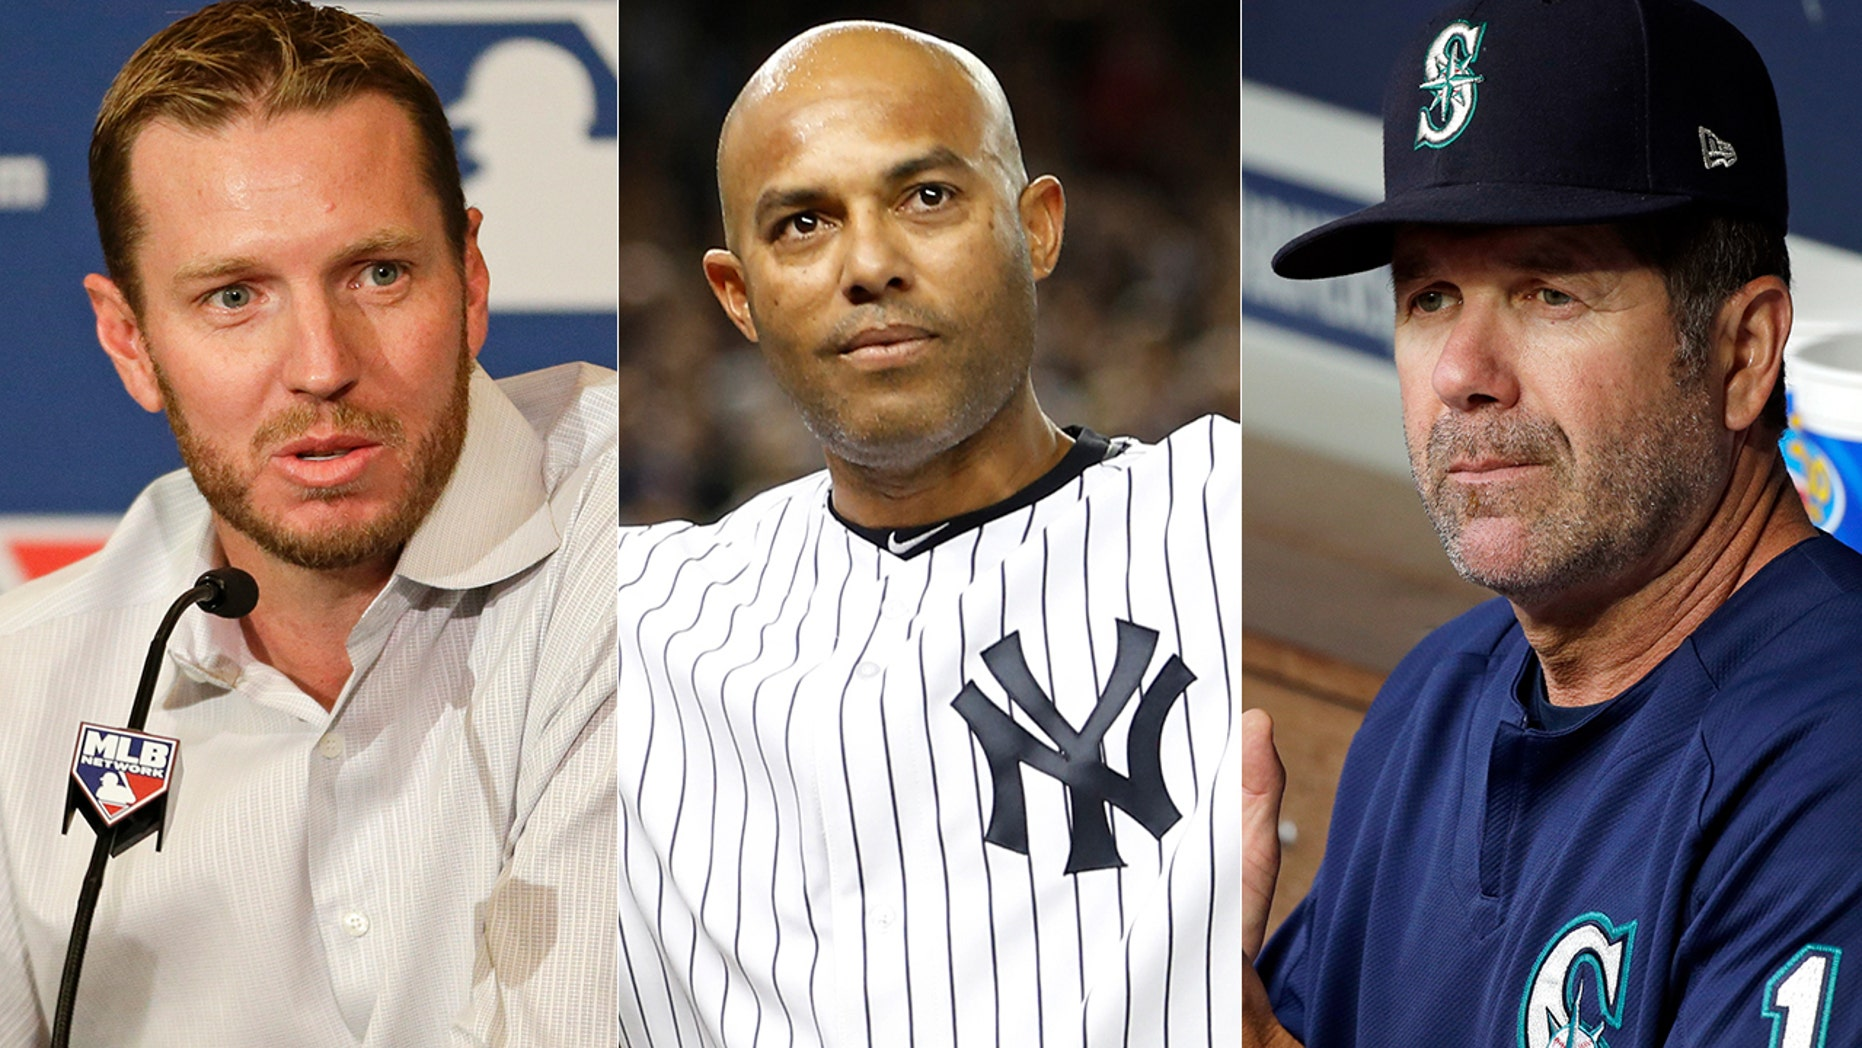 (Left to right) Roy Halladay, Mariano Rivera and Edgar Martinez were among those voted into the Hall of Fame.